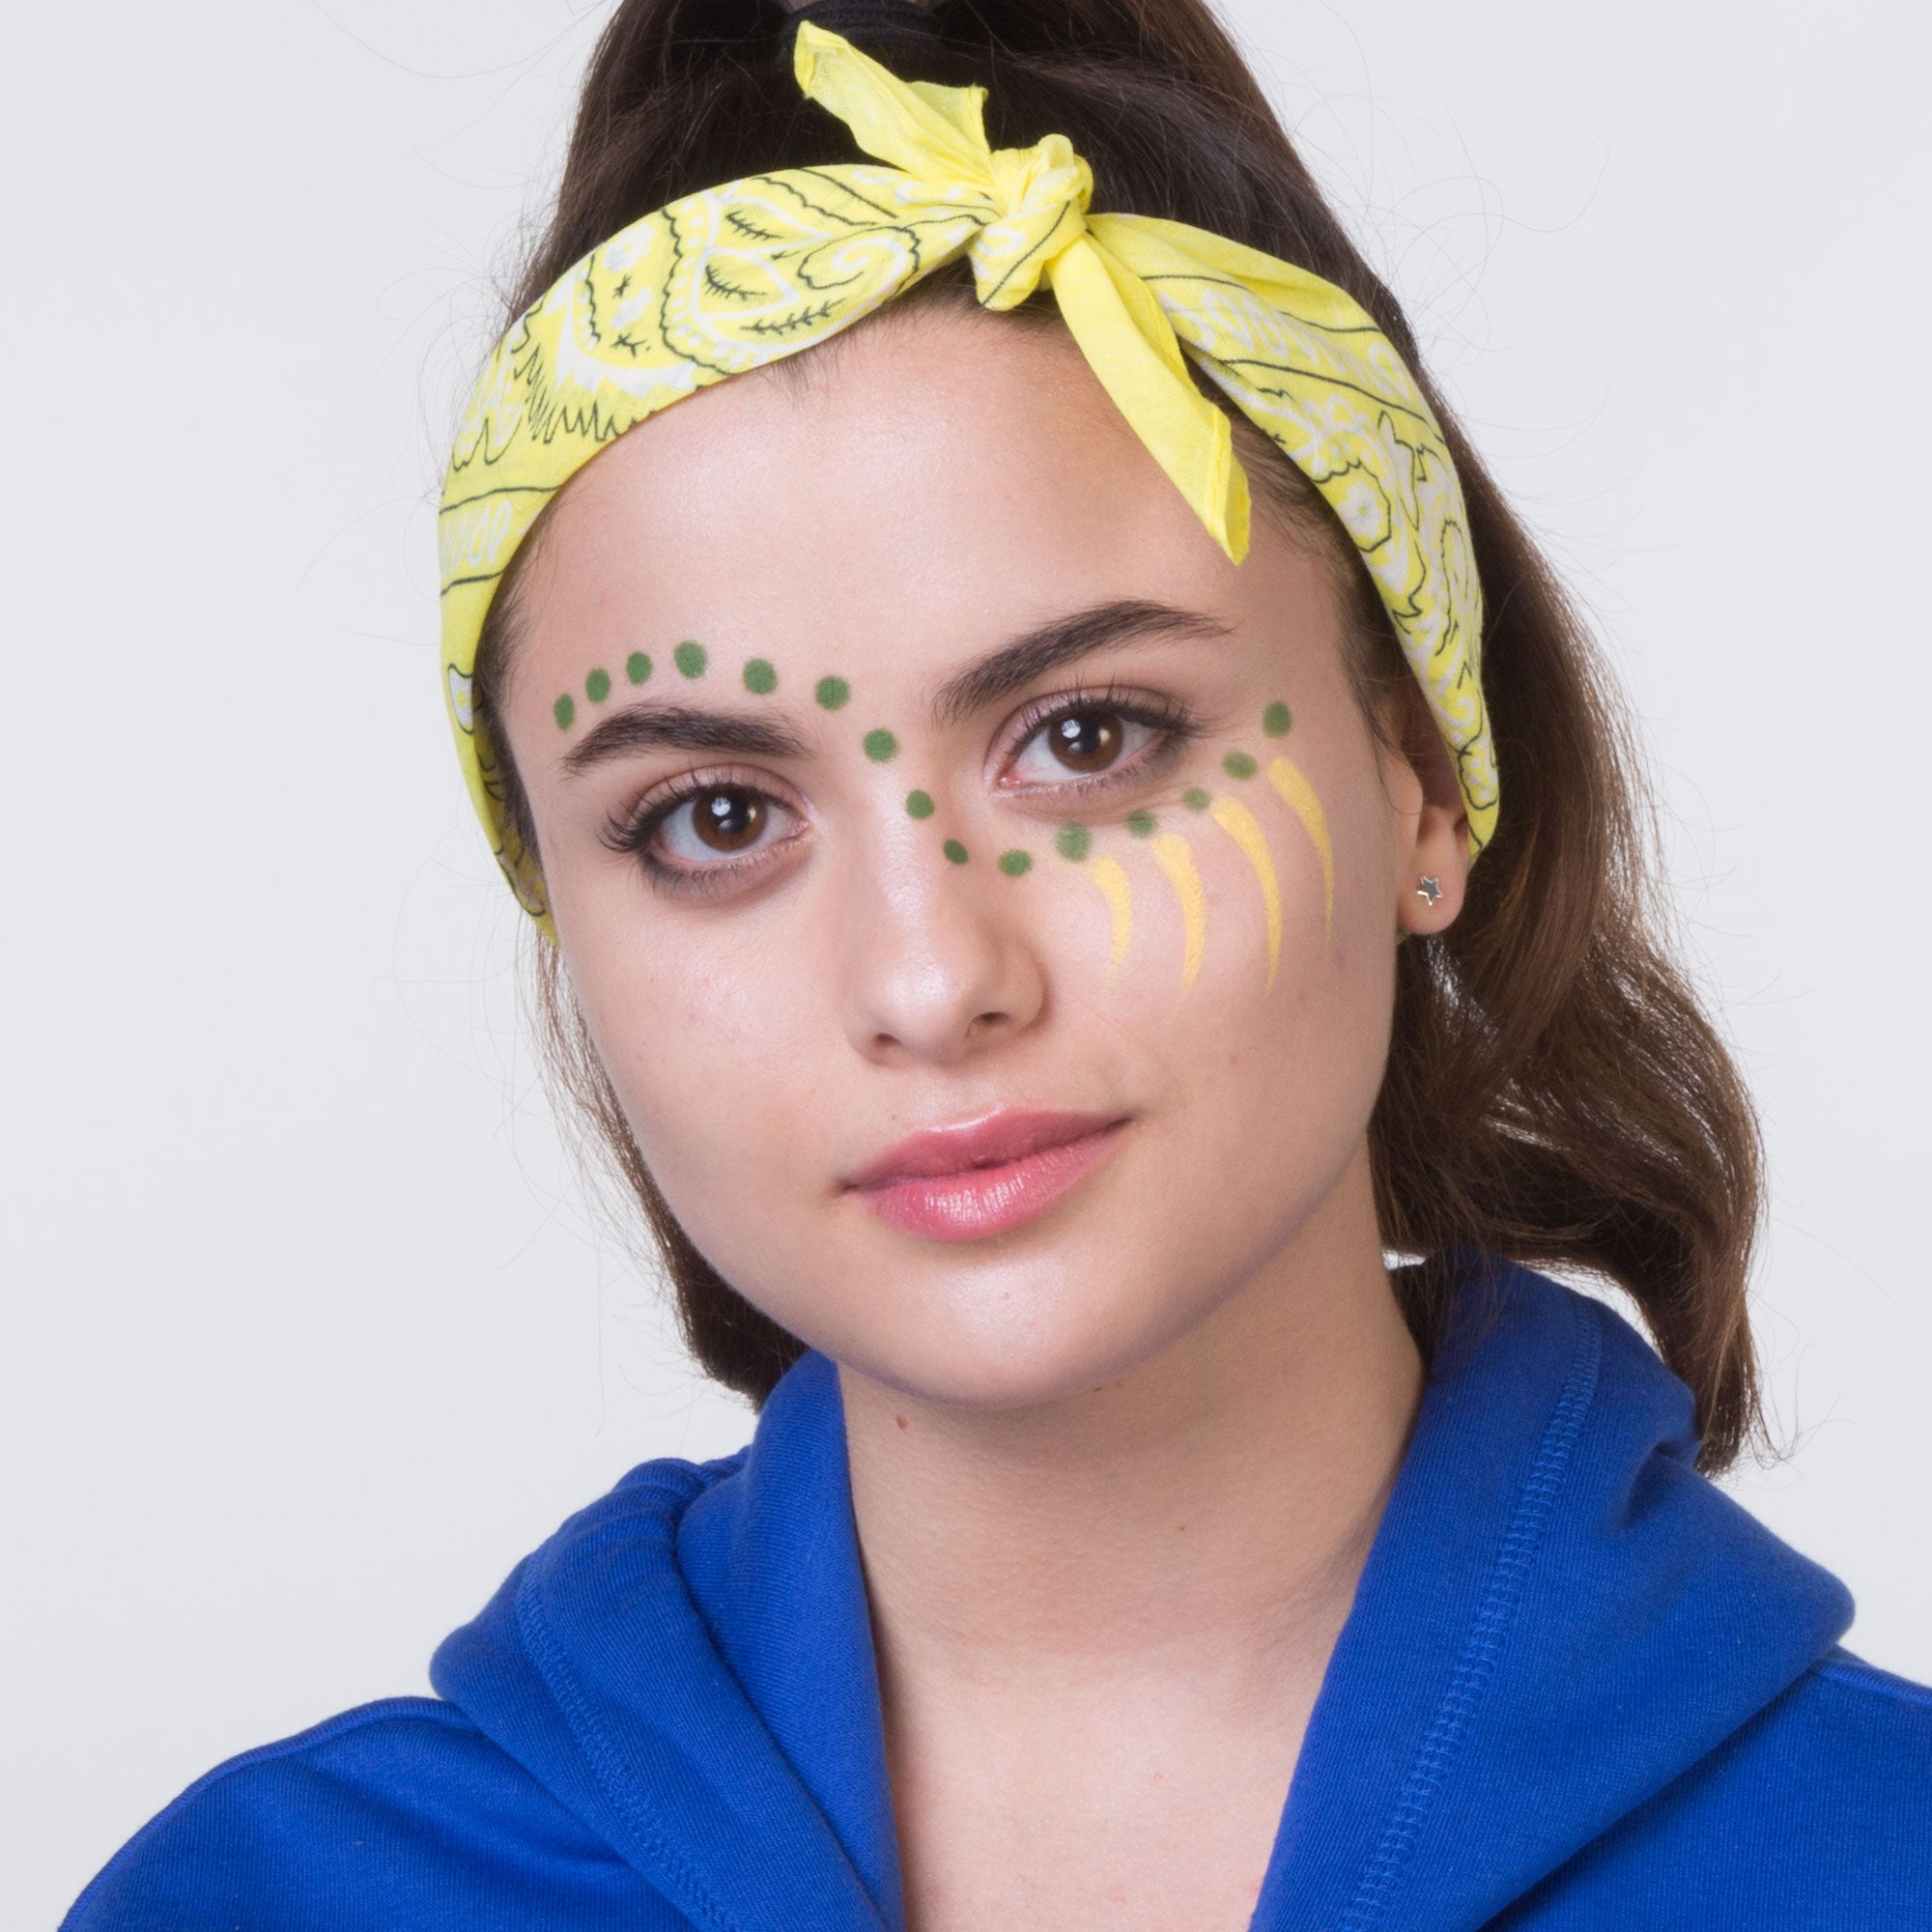 Girl with Visual Artist Makeup Crayon on face, school spirit